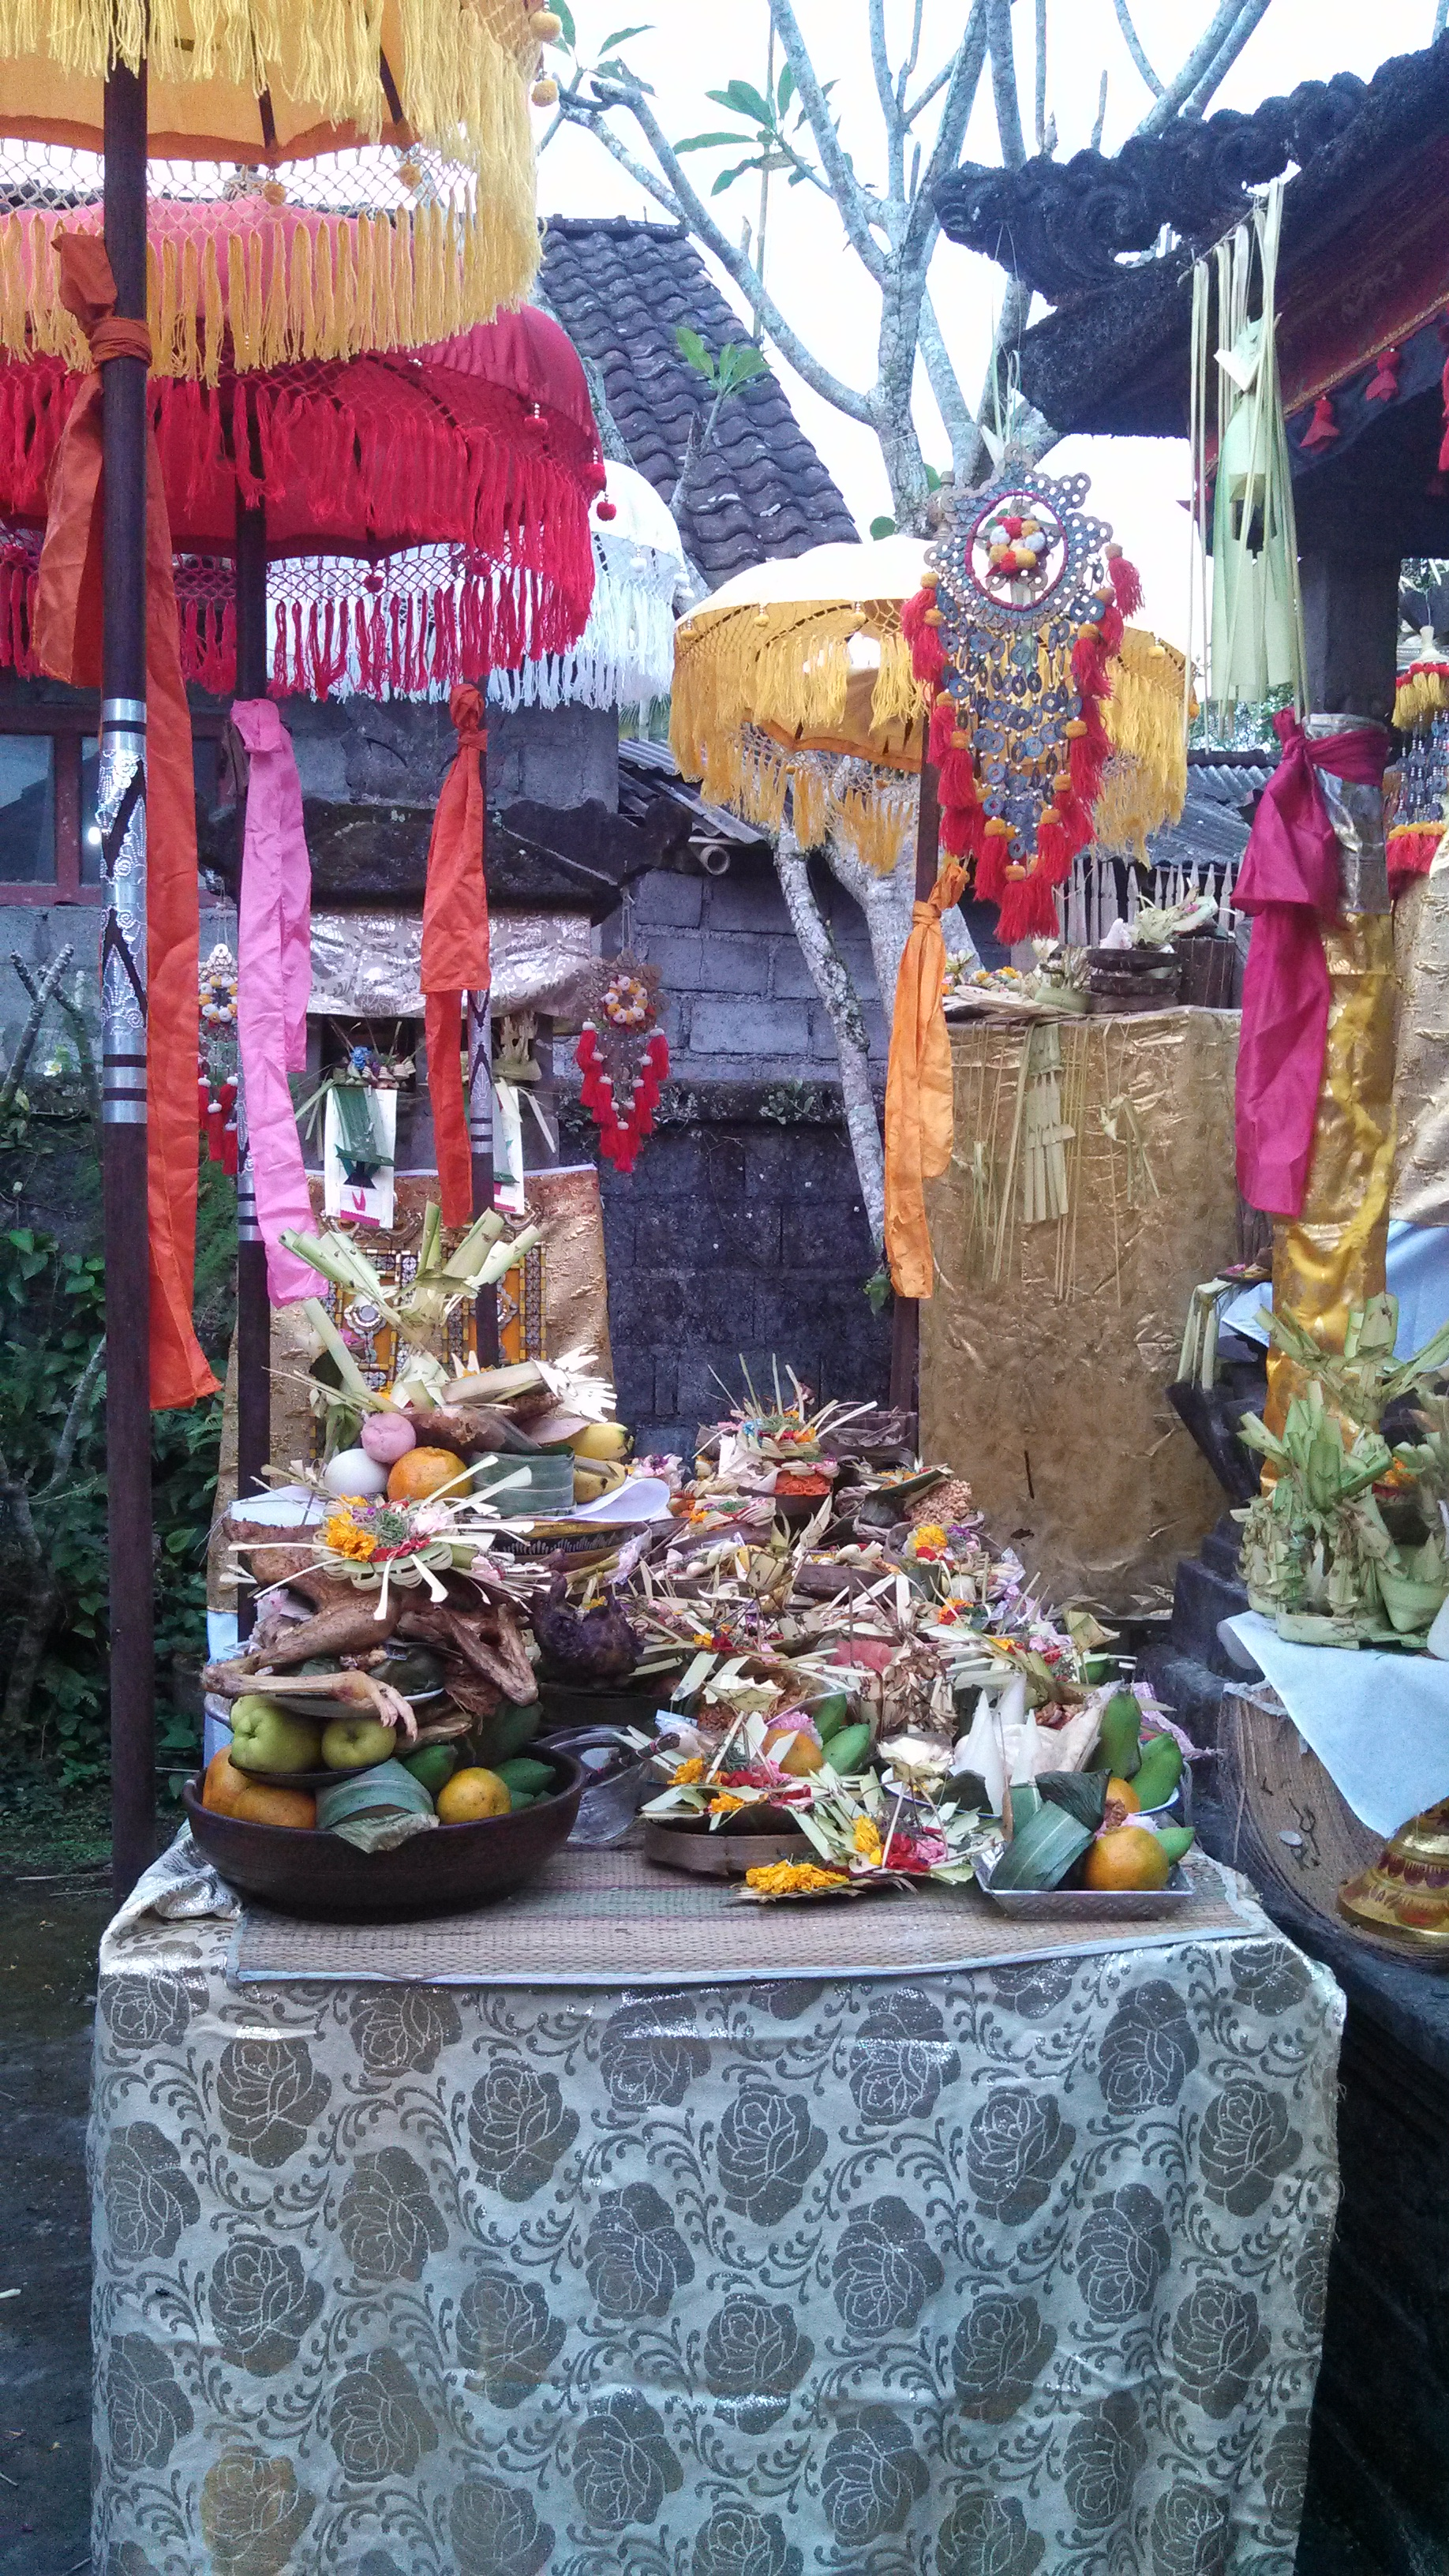 The camera just can't capture it all. Heaps of offerings were on the tables, in the temple's nooks and crannies, and on the ground.